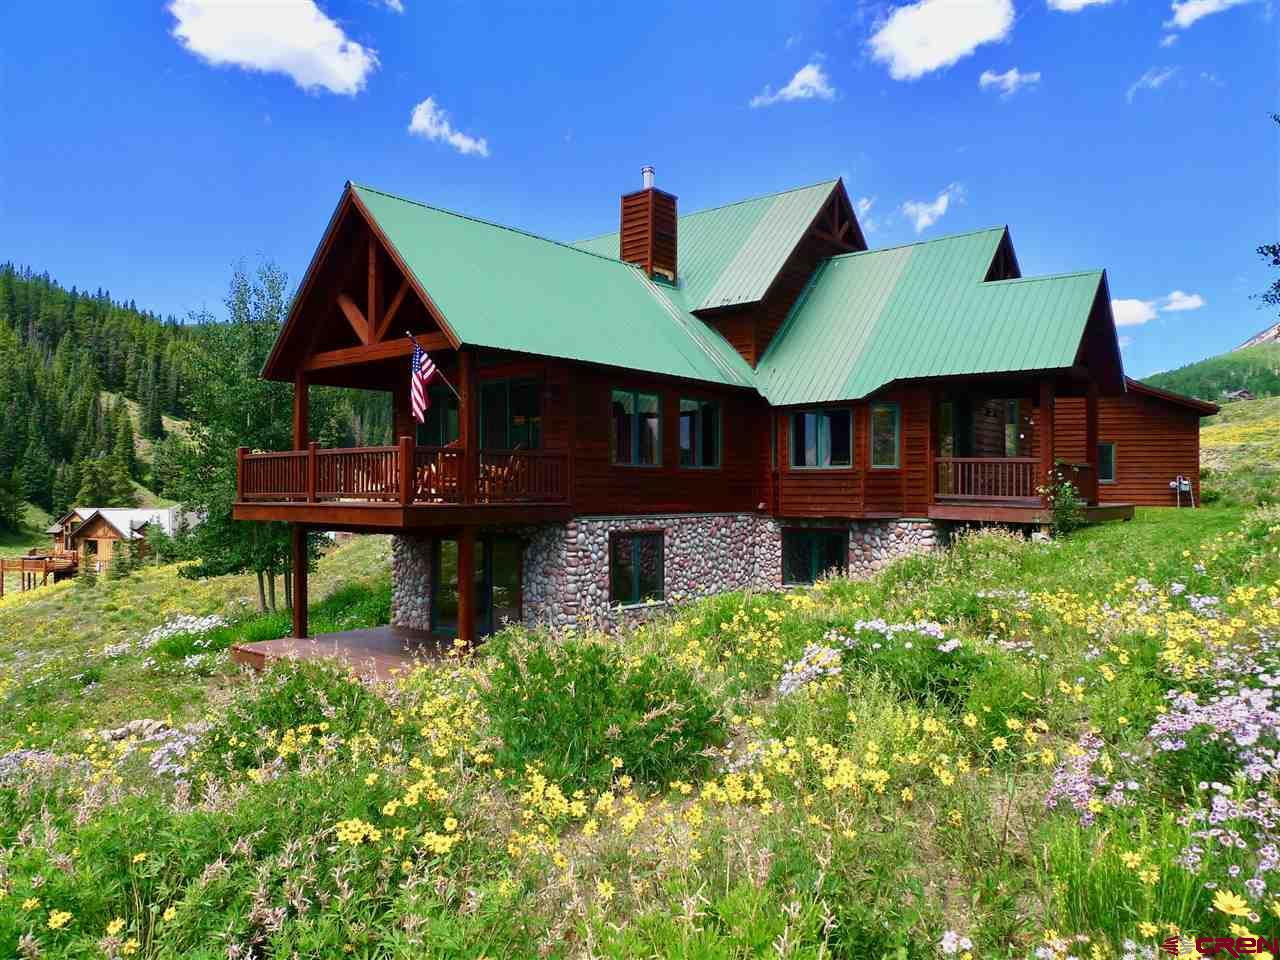 MLS# 757645 - 1 - 34 Creek Cove, Crested Butte, CO 81224